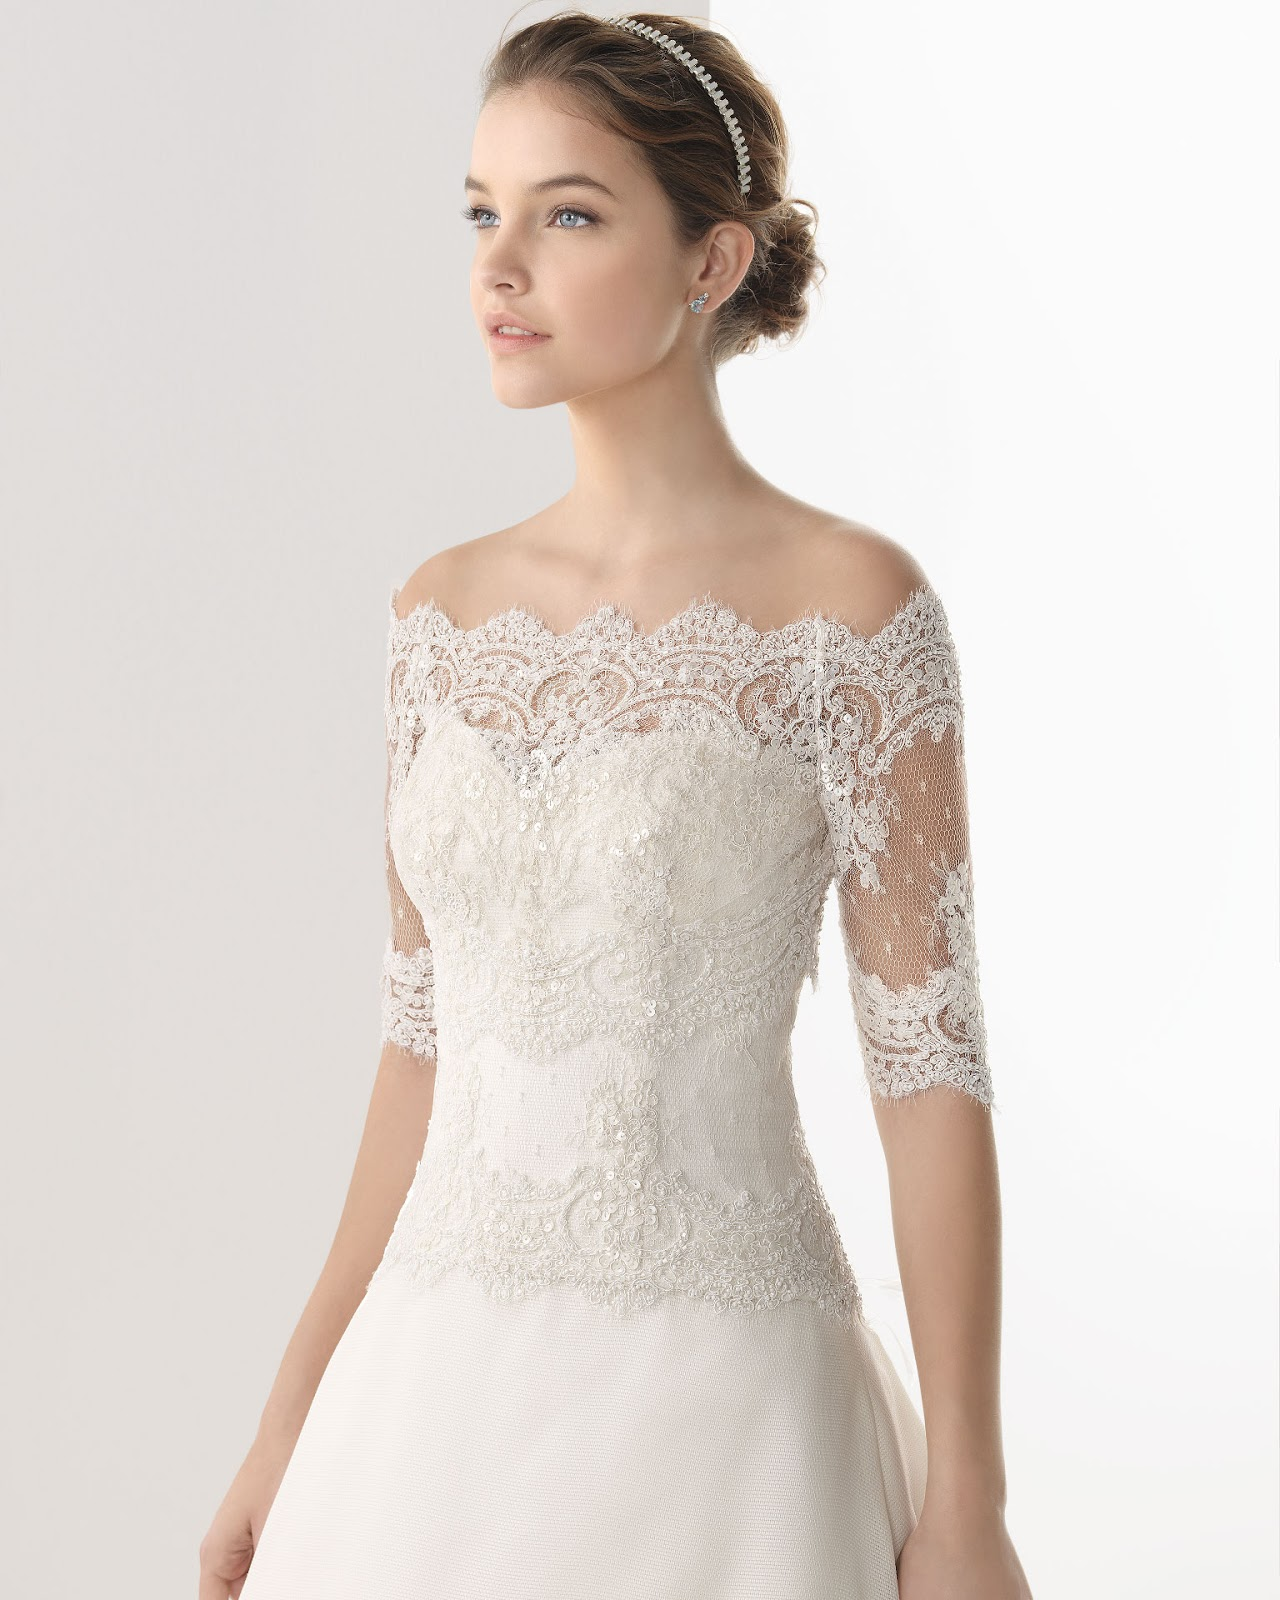 Wedding Dress Images Lace : Dressybridal wedding dresses with lace long sleeves and